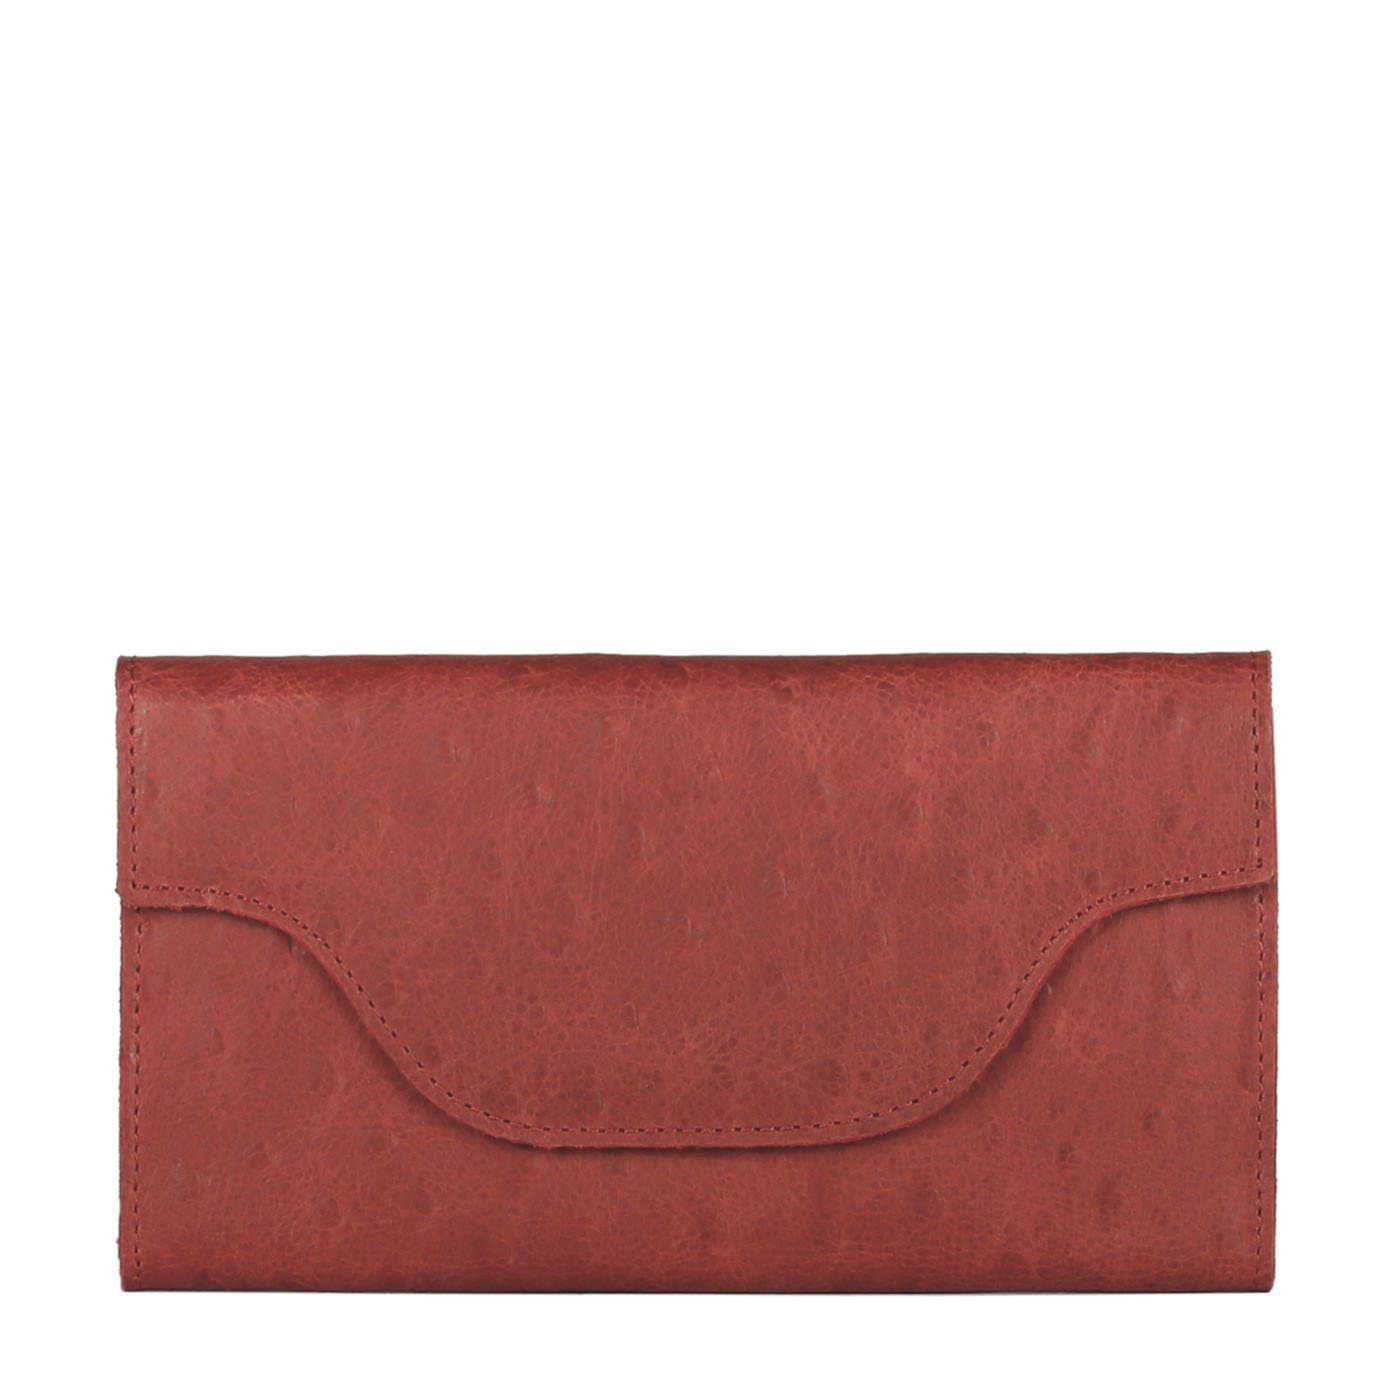 MY CARRY BAG Wallet - ostrich red